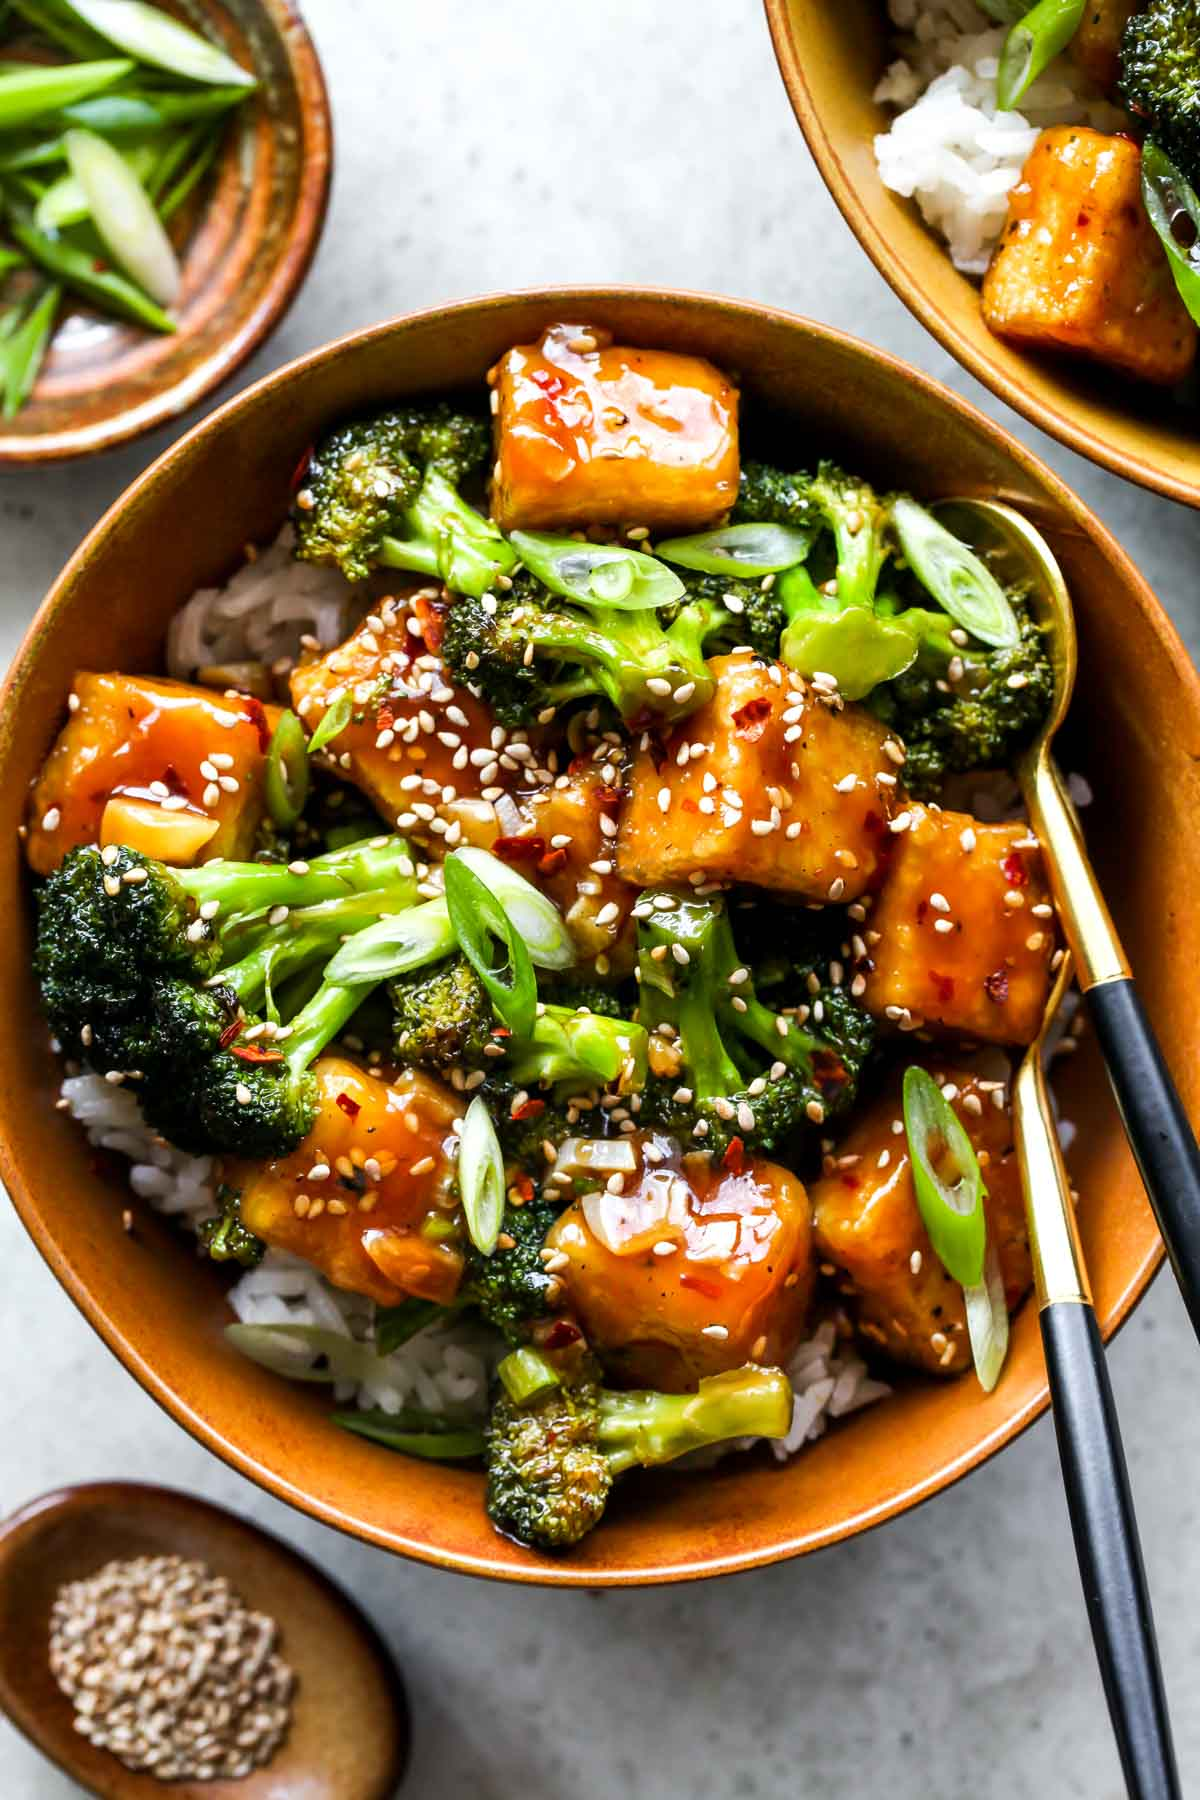 Asian tofu and broccoli in a gold bowl topped with sesame seeds